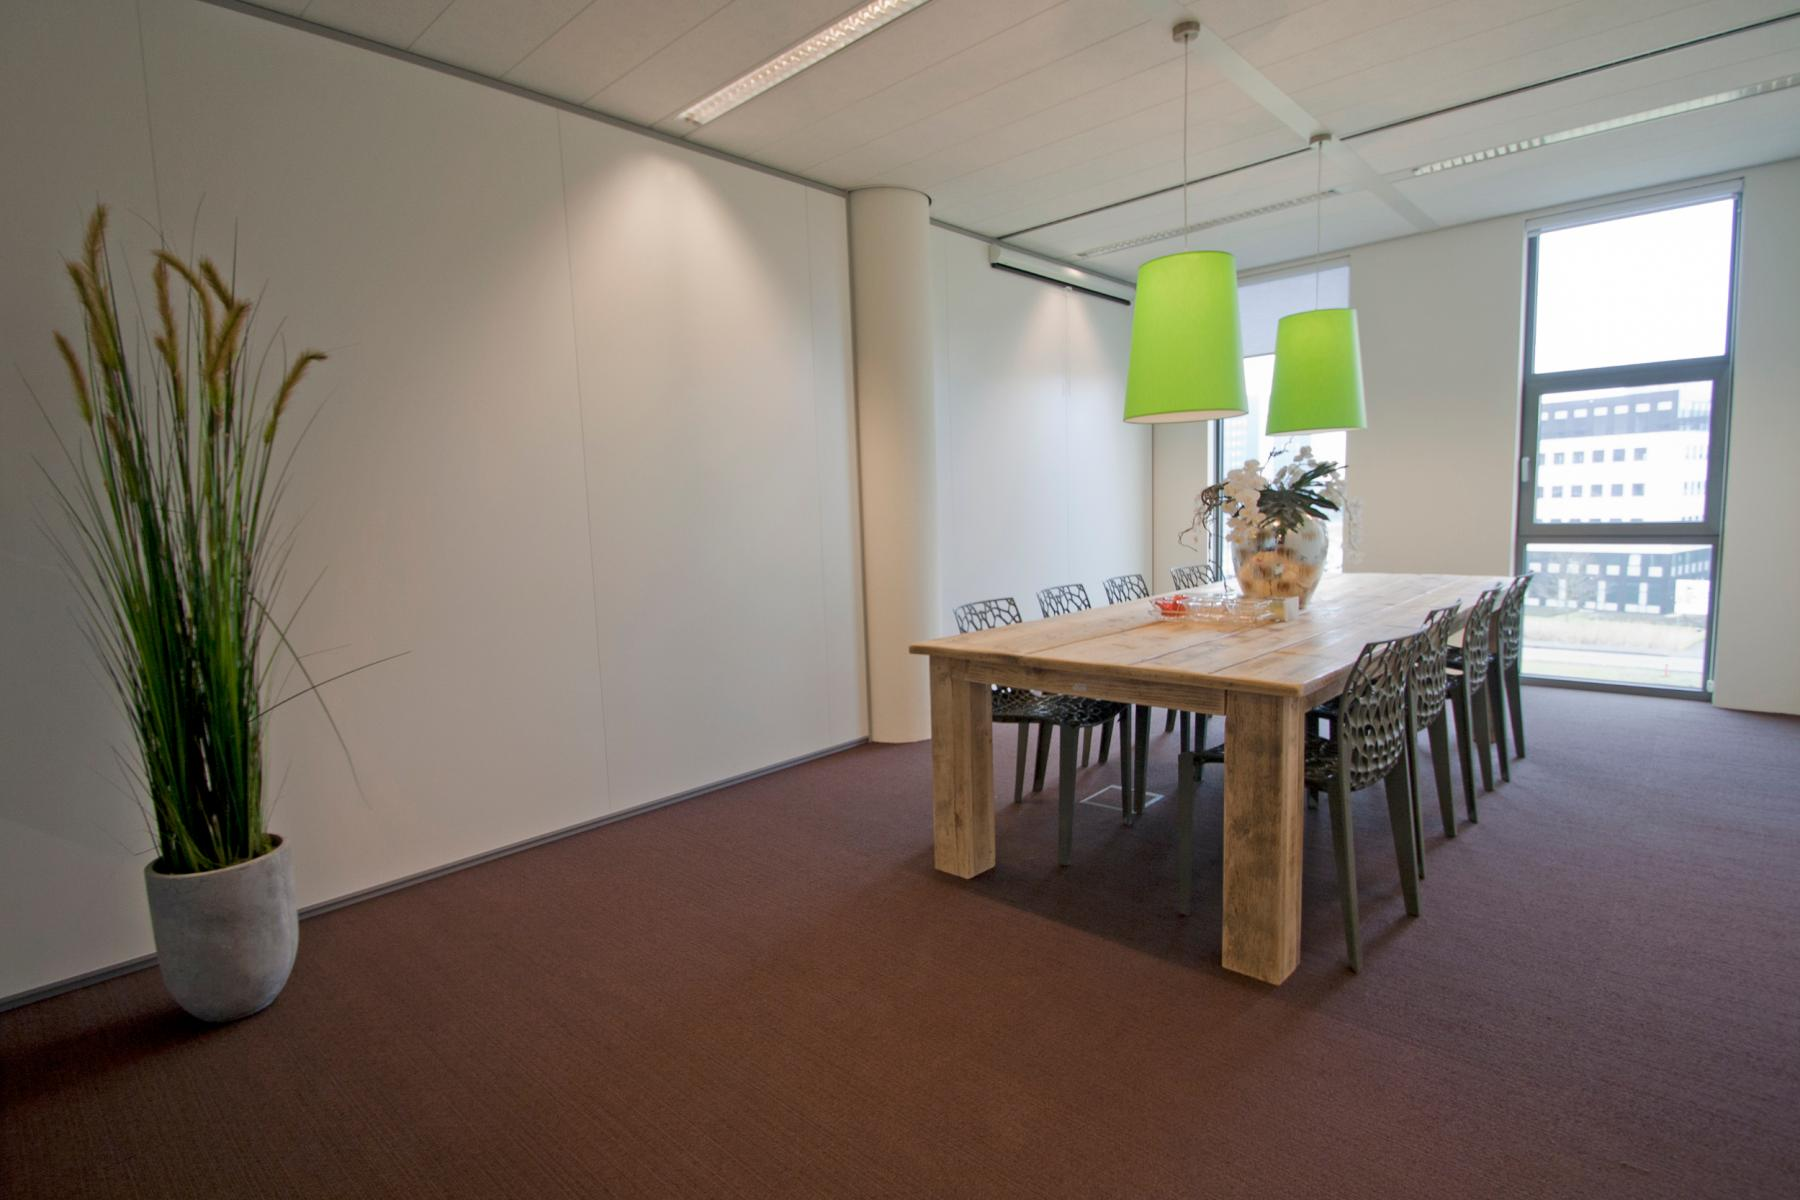 Rent office space John M. Keynesplein 1-27, Amsterdam (11)